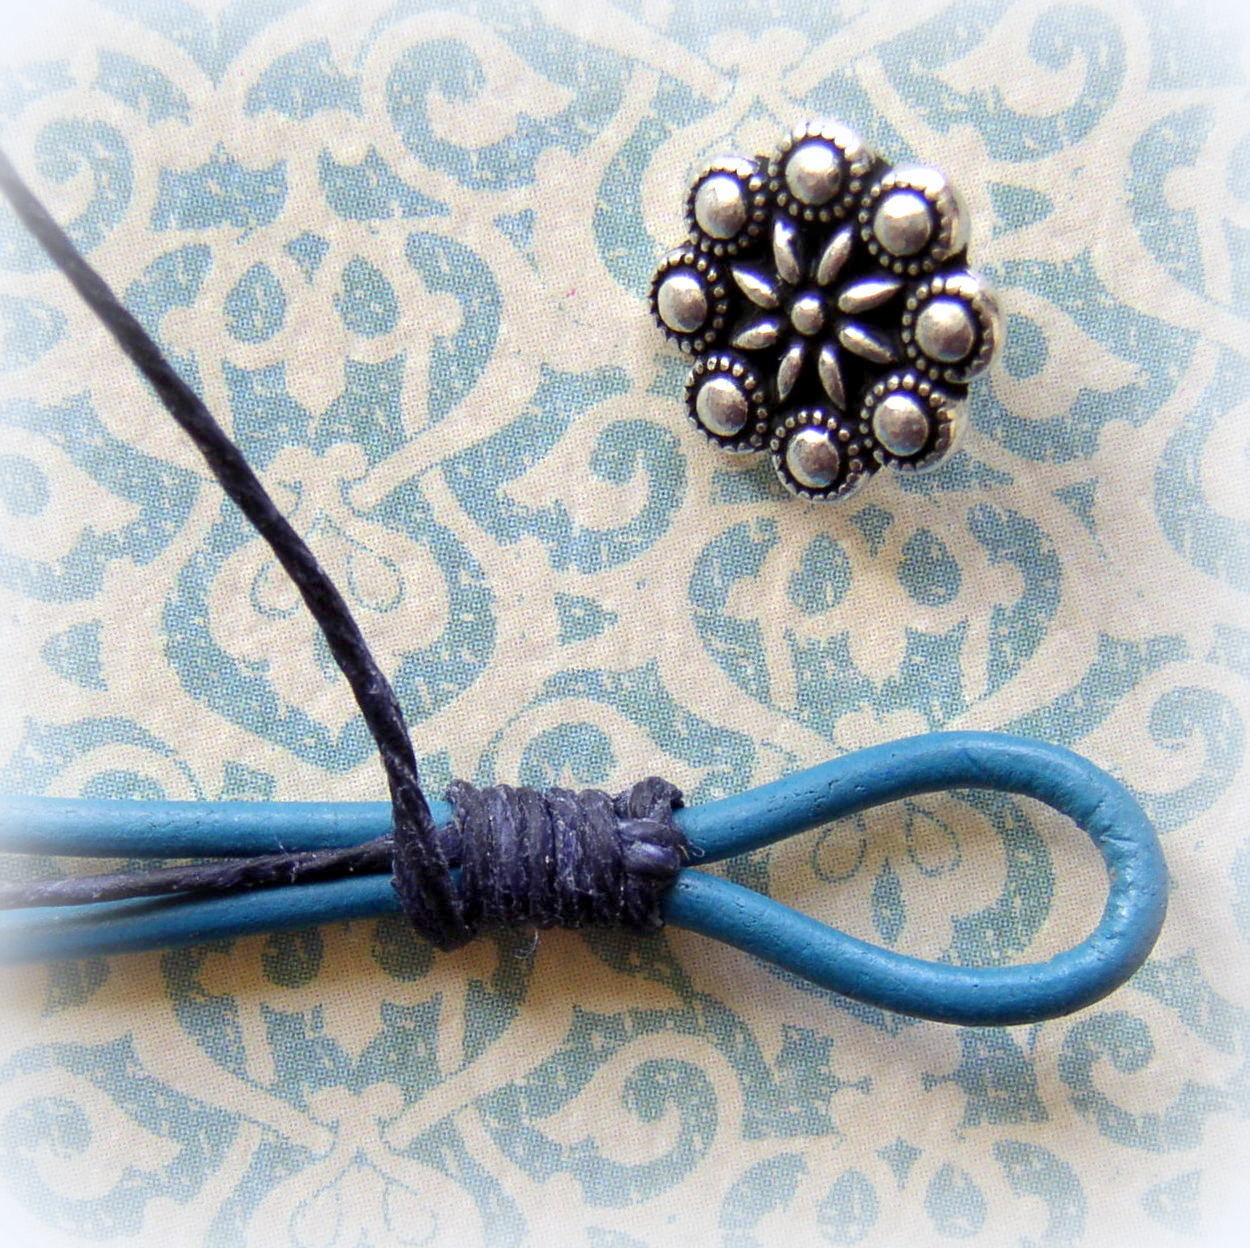 Lashing the button loop securely to make a Rhinestone and Leather wrap Bracelet